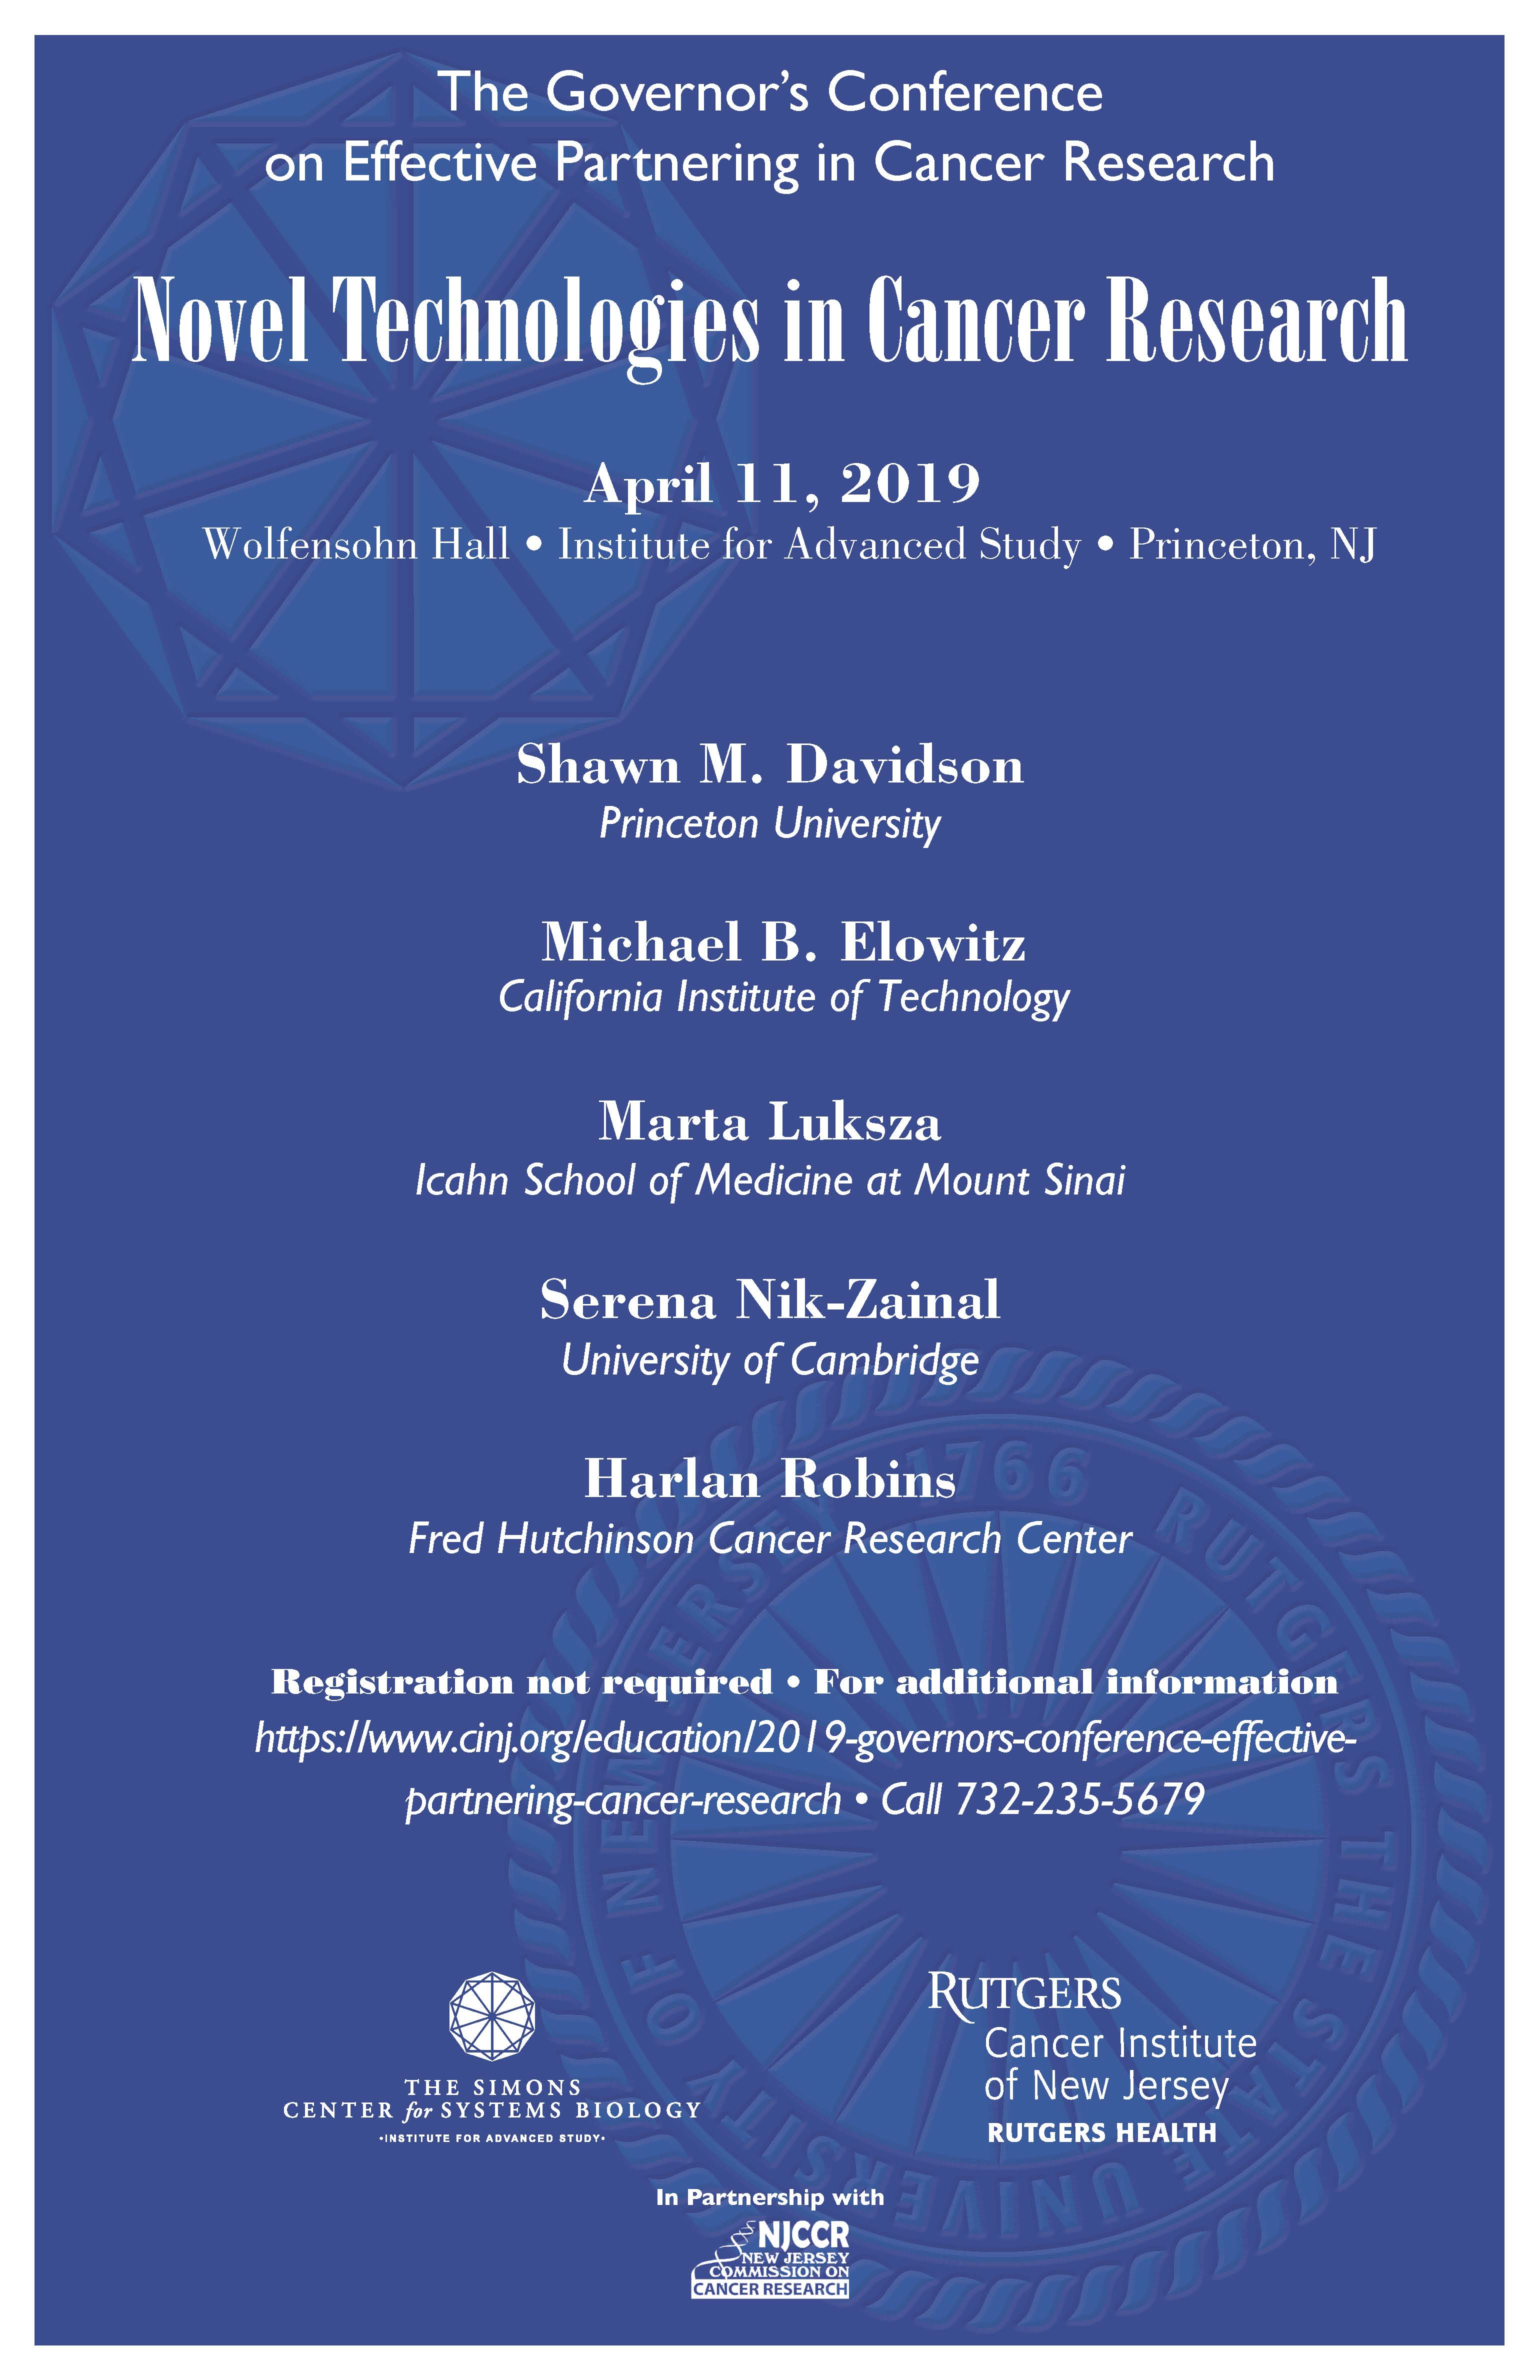 The 2019 Governor's Conference on Effective Partnering in